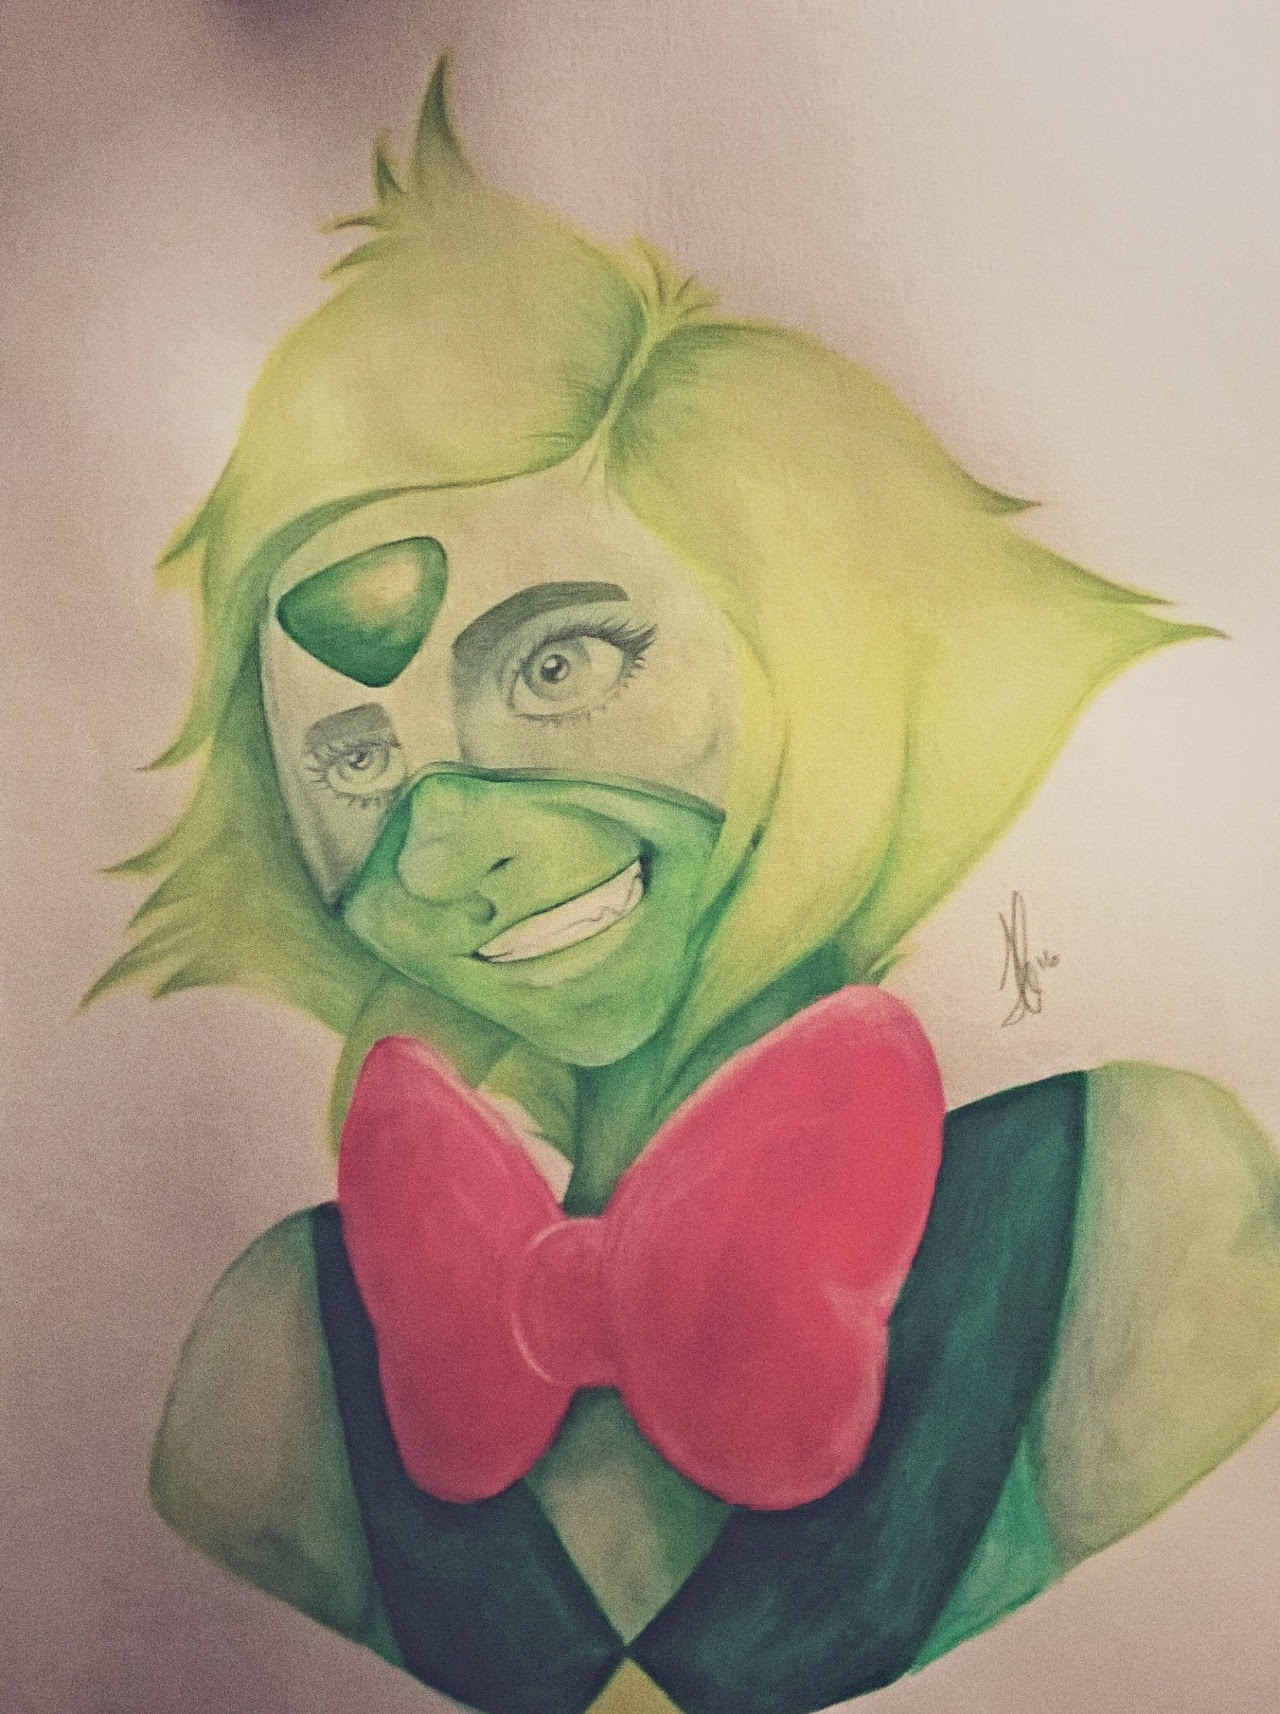 Finished Peridot. I kind of like the original sketch better, but what'cha gonna do.